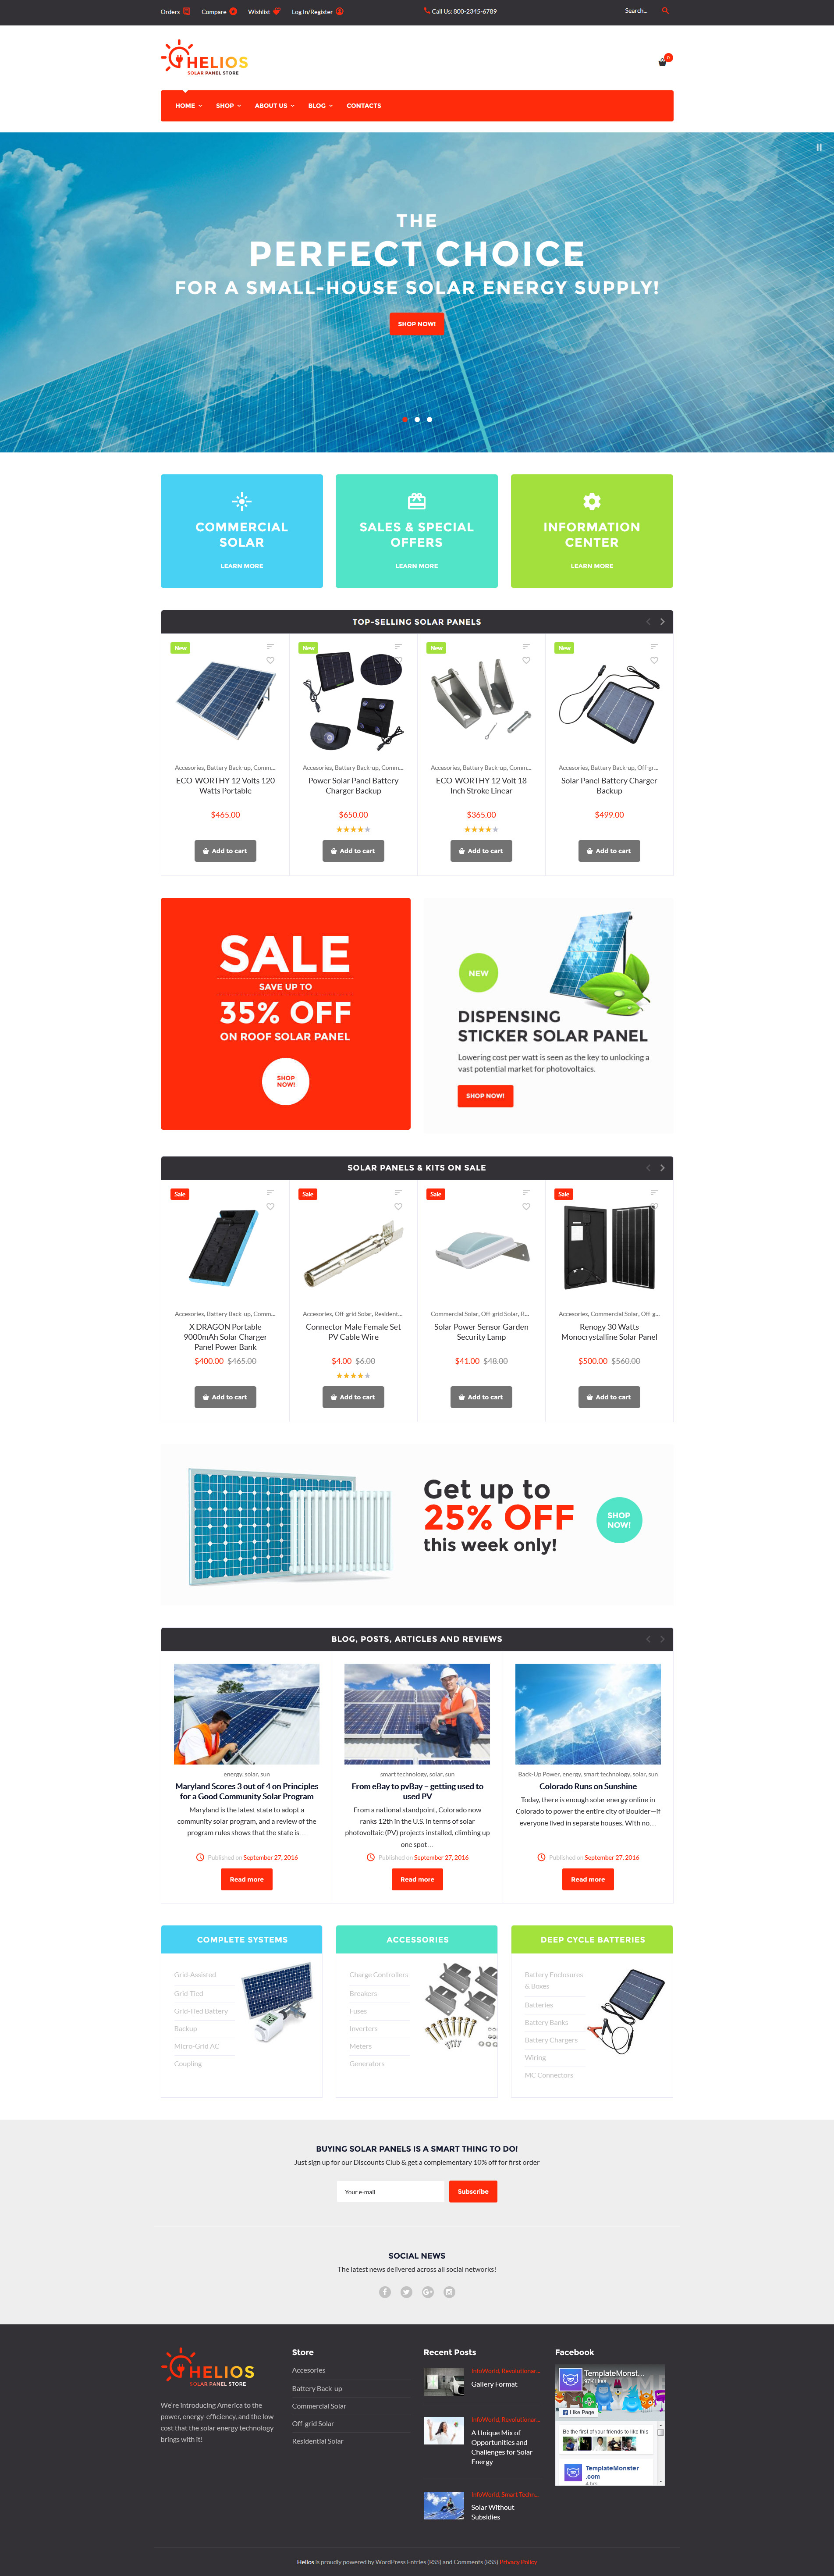 Responsivt Helios - Solar Panels and Accessories Store WooCommerce-tema #59040